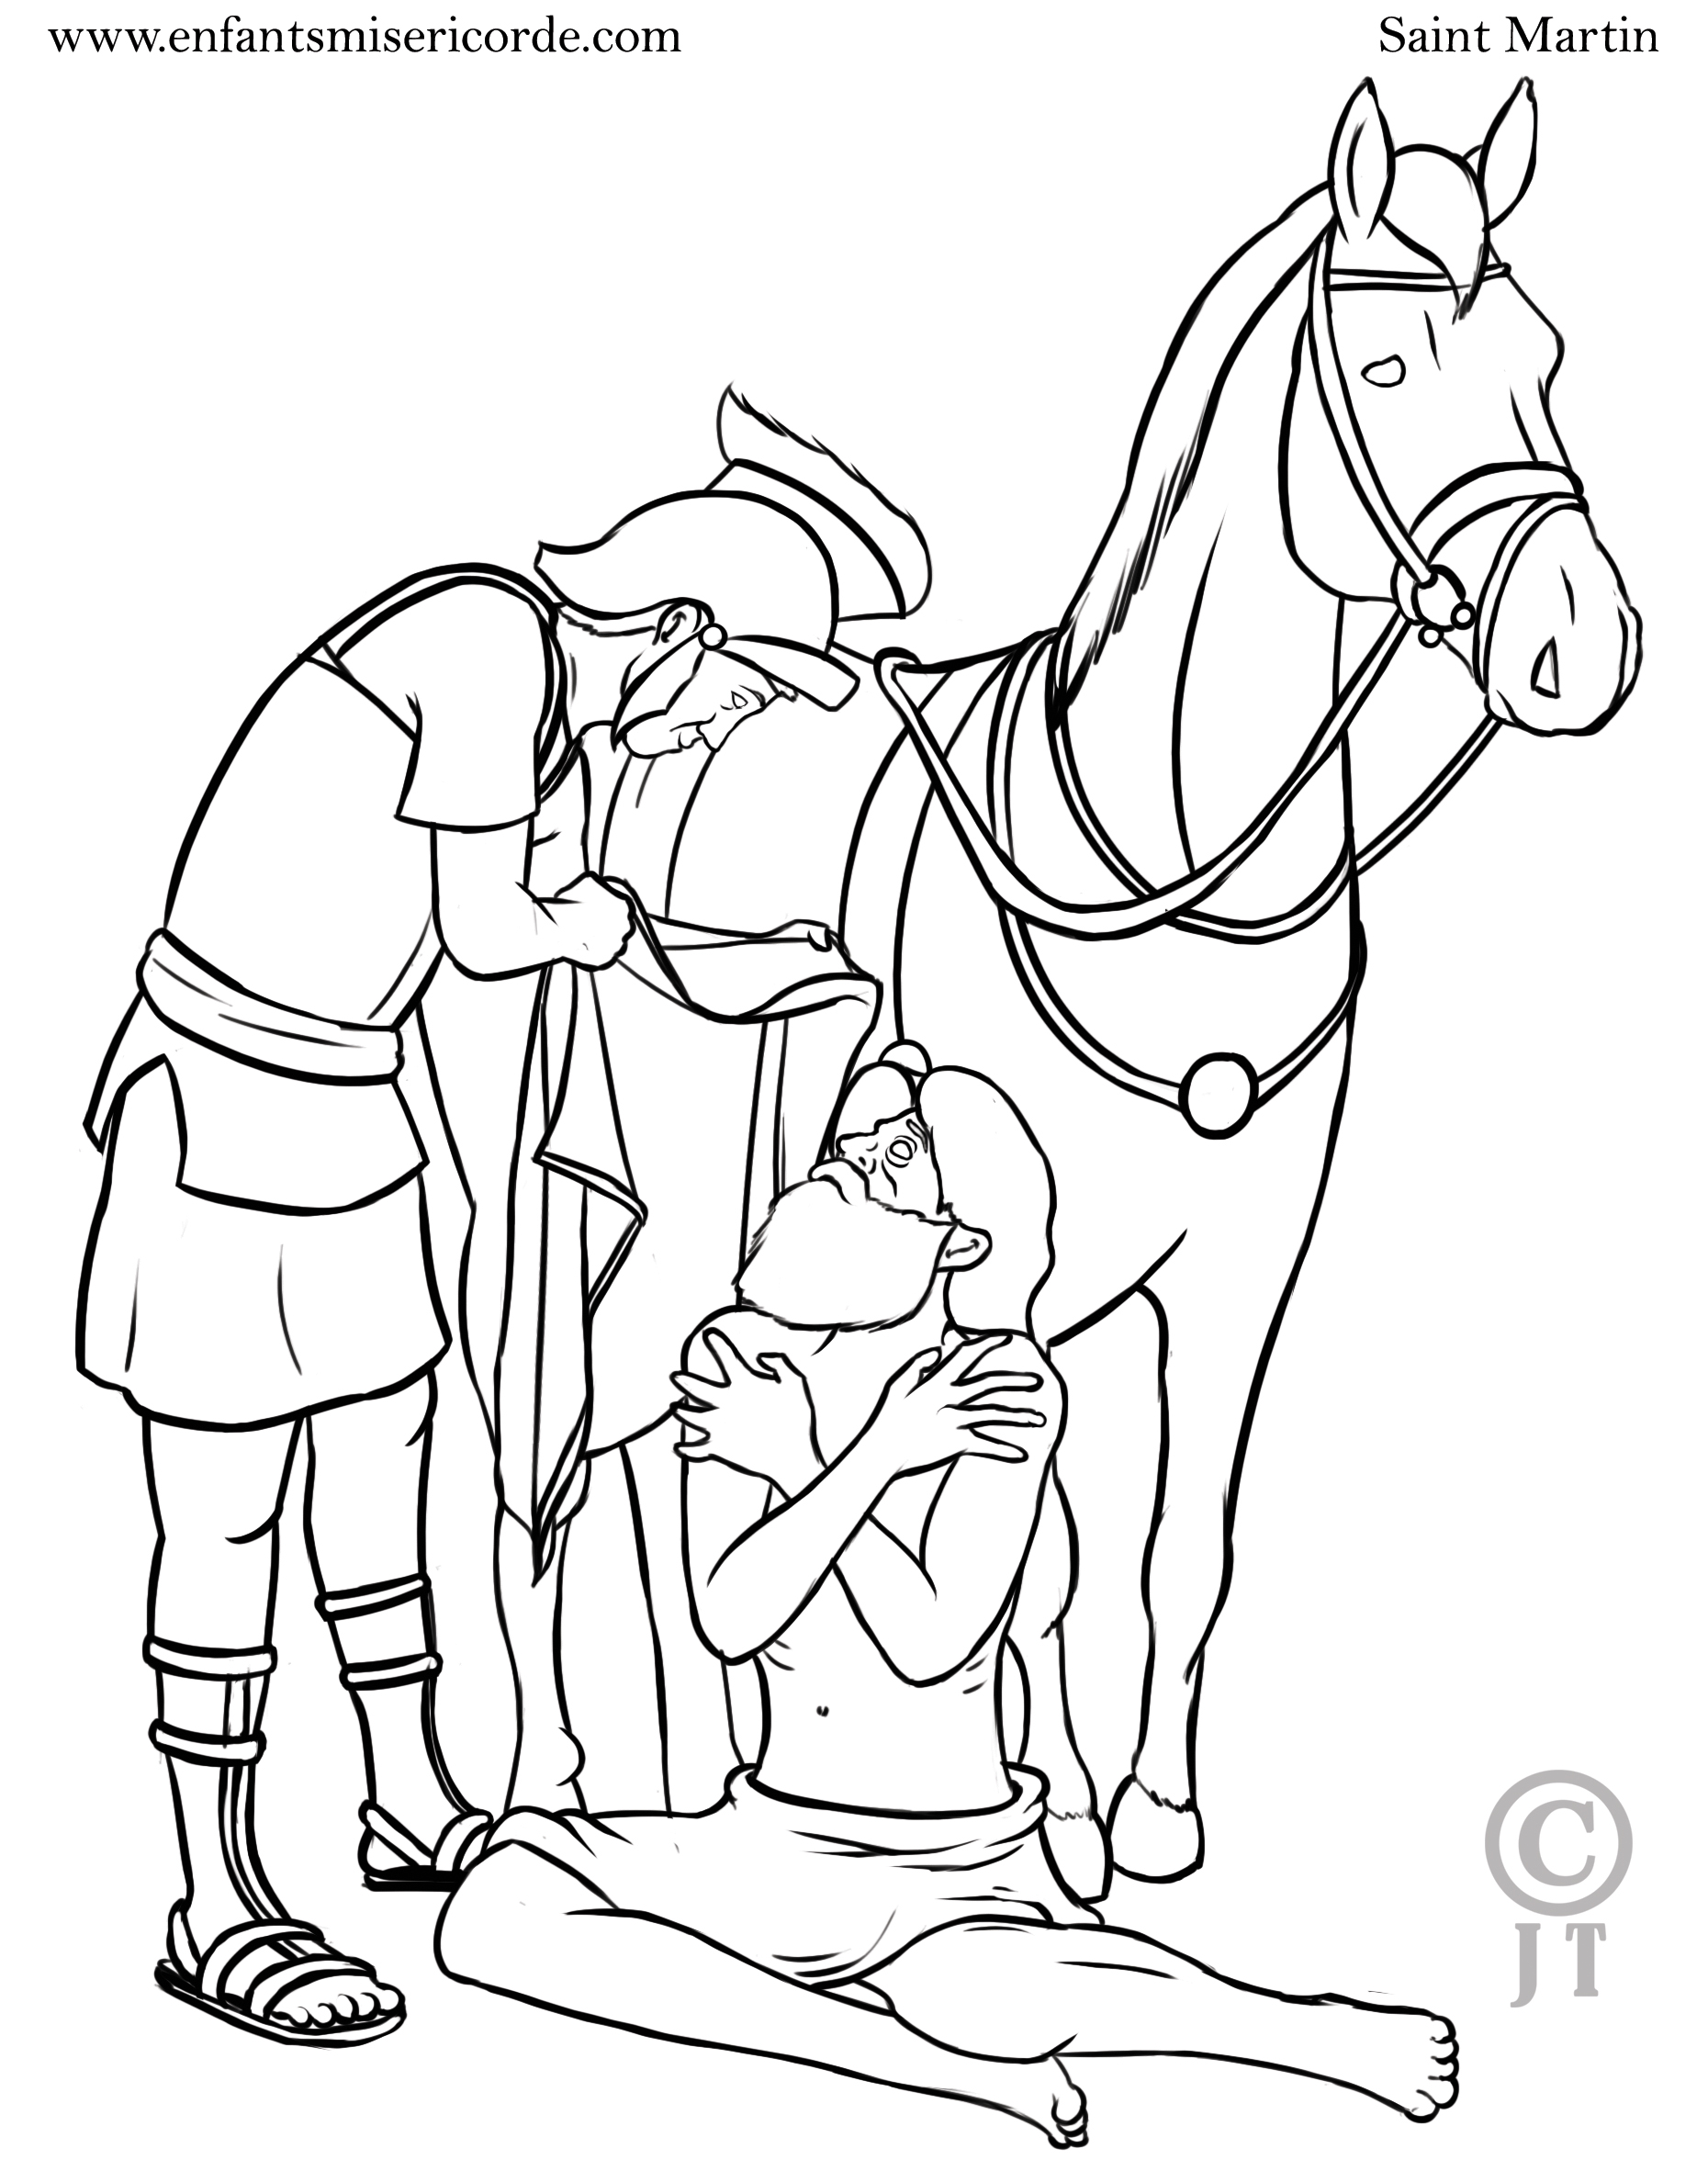 saint martin coloriage